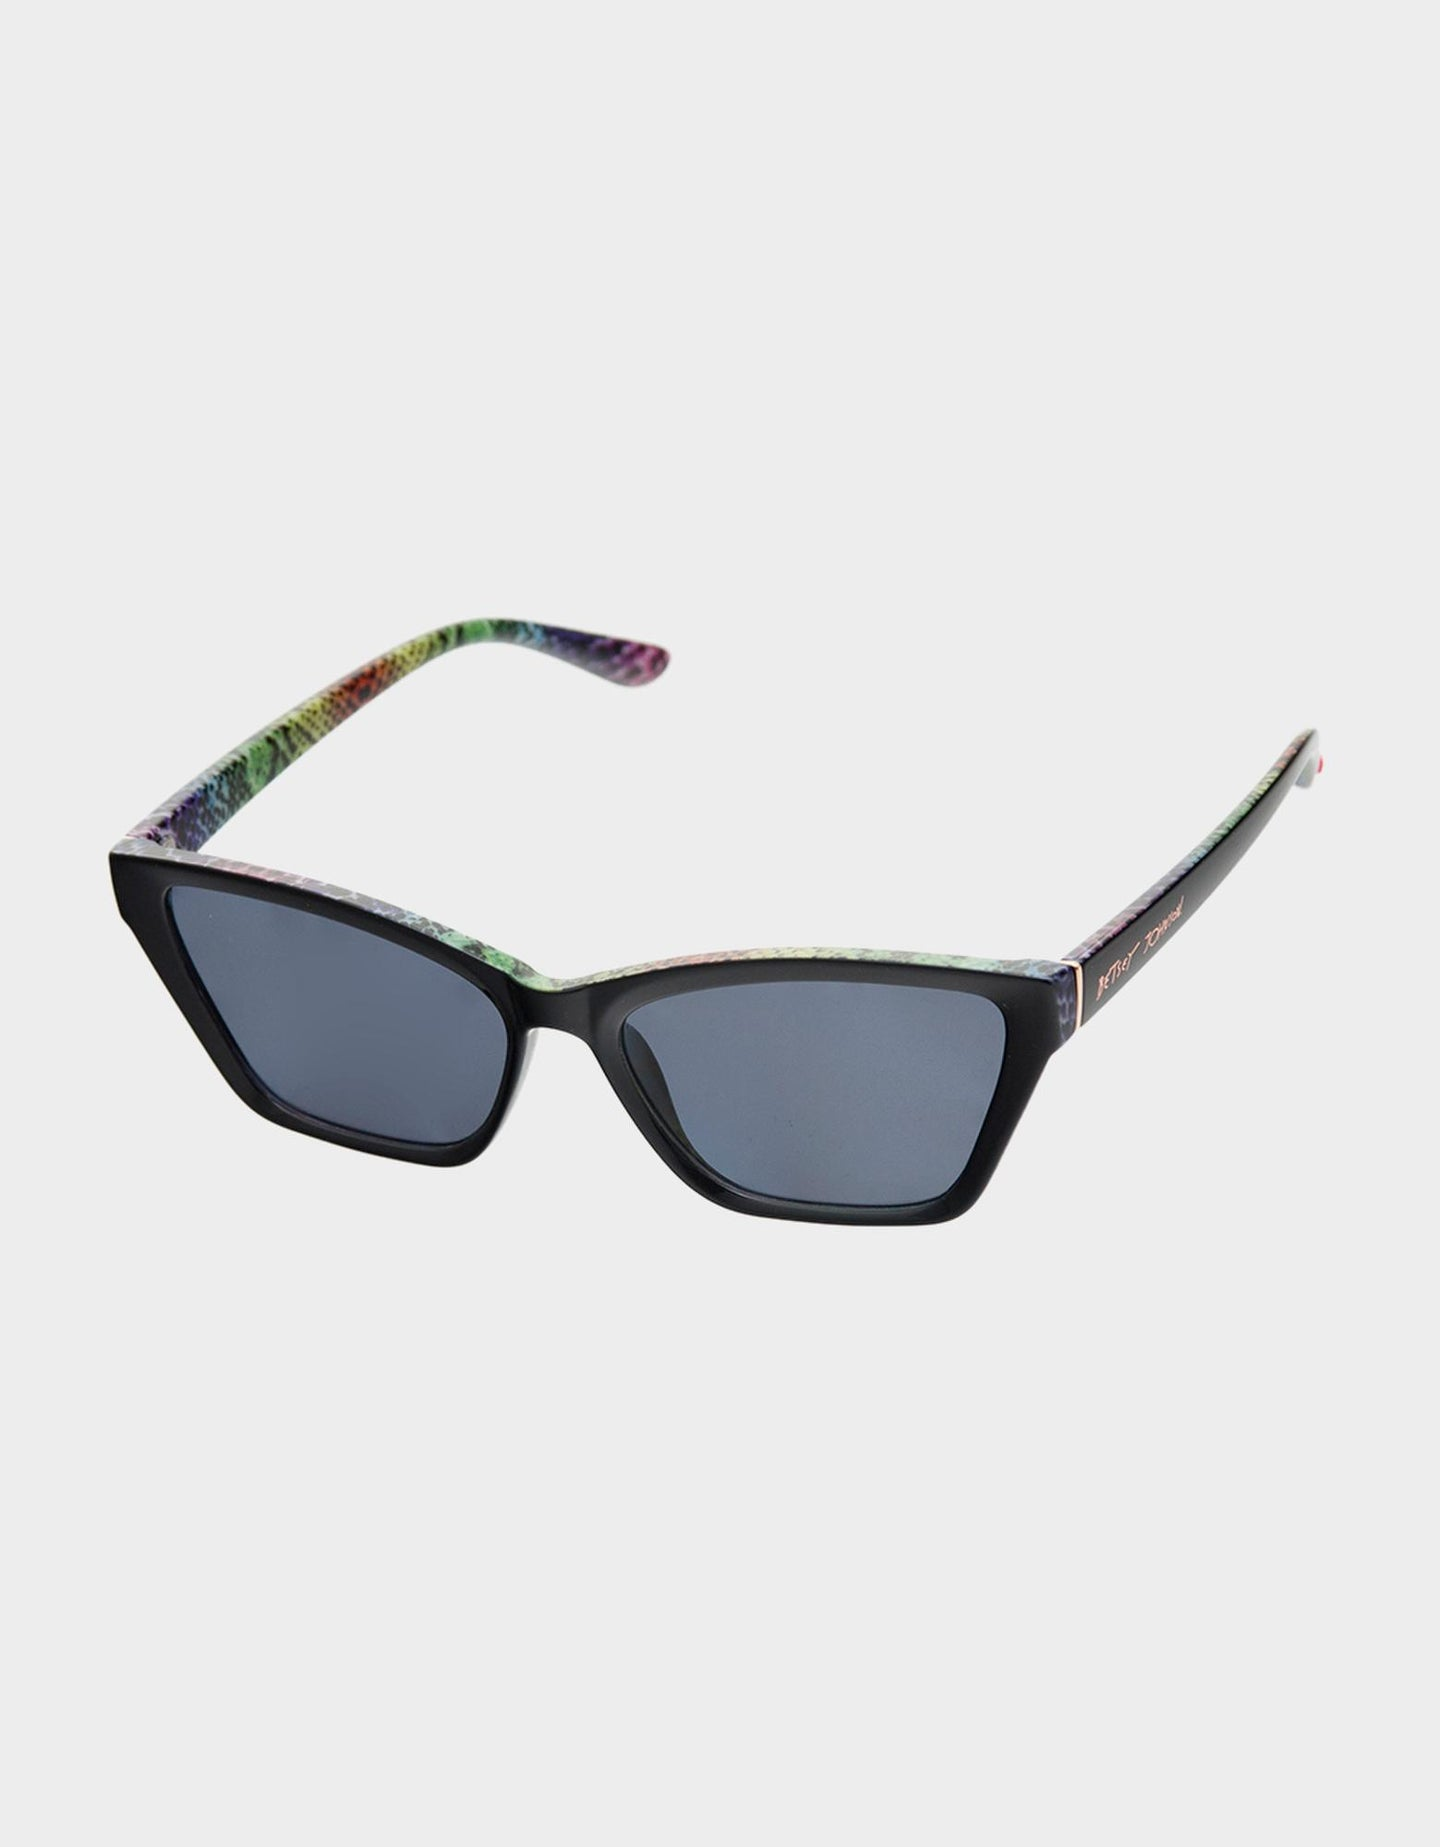 PARTY IN THE BACK SUNGLASSES MULTI - ACCESSORIES - Betsey Johnson